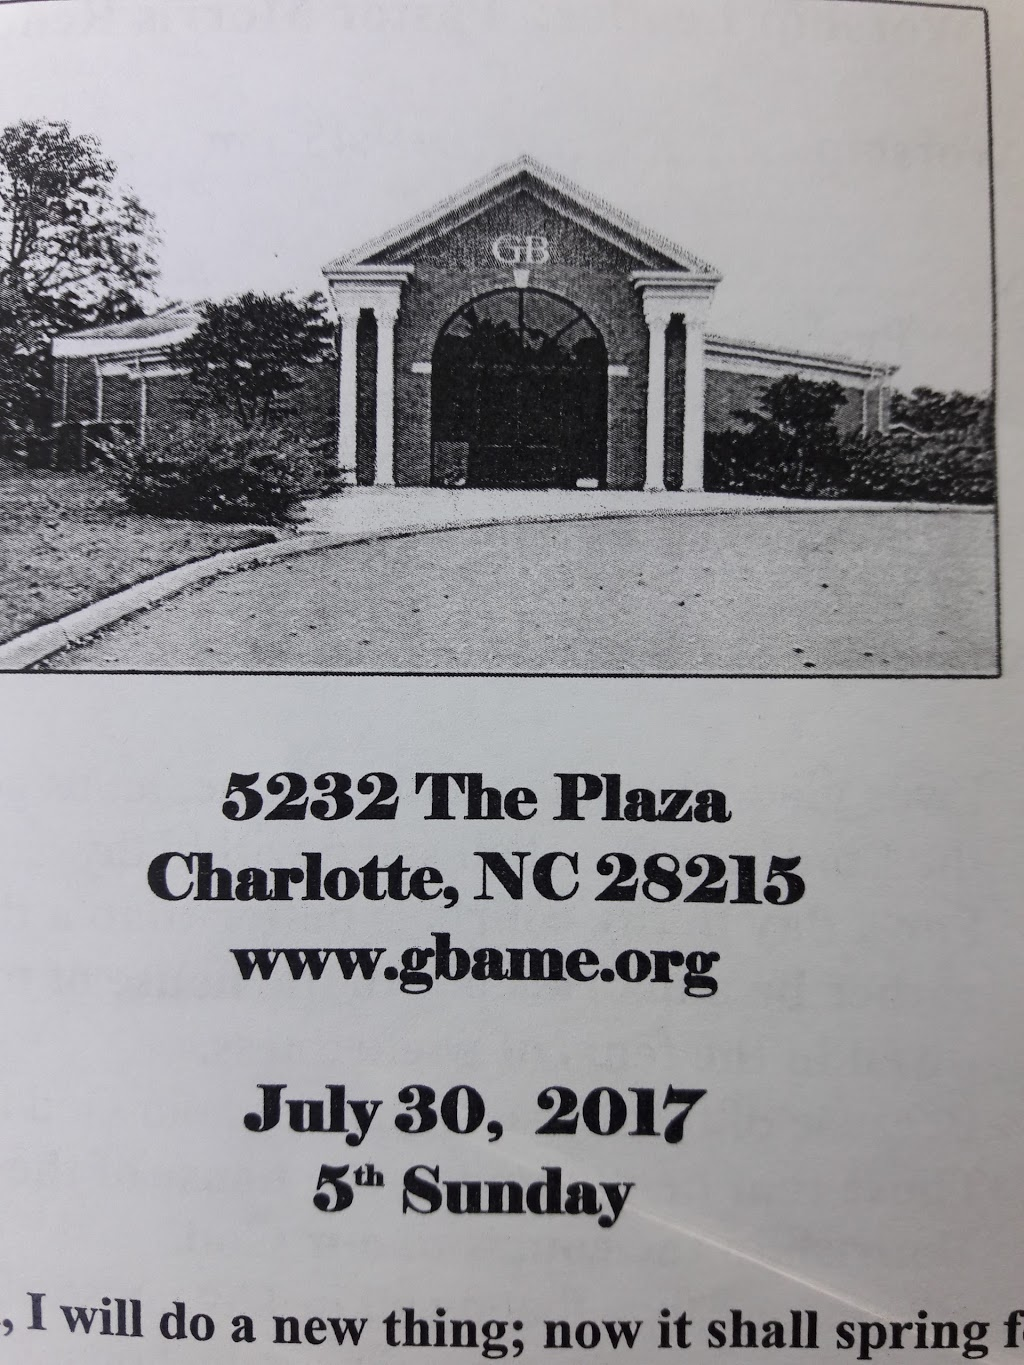 Greater Bethel AME Church - church  | Photo 4 of 5 | Address: 5232 The Plaza, Charlotte, NC 28215, USA | Phone: (980) 949-6576